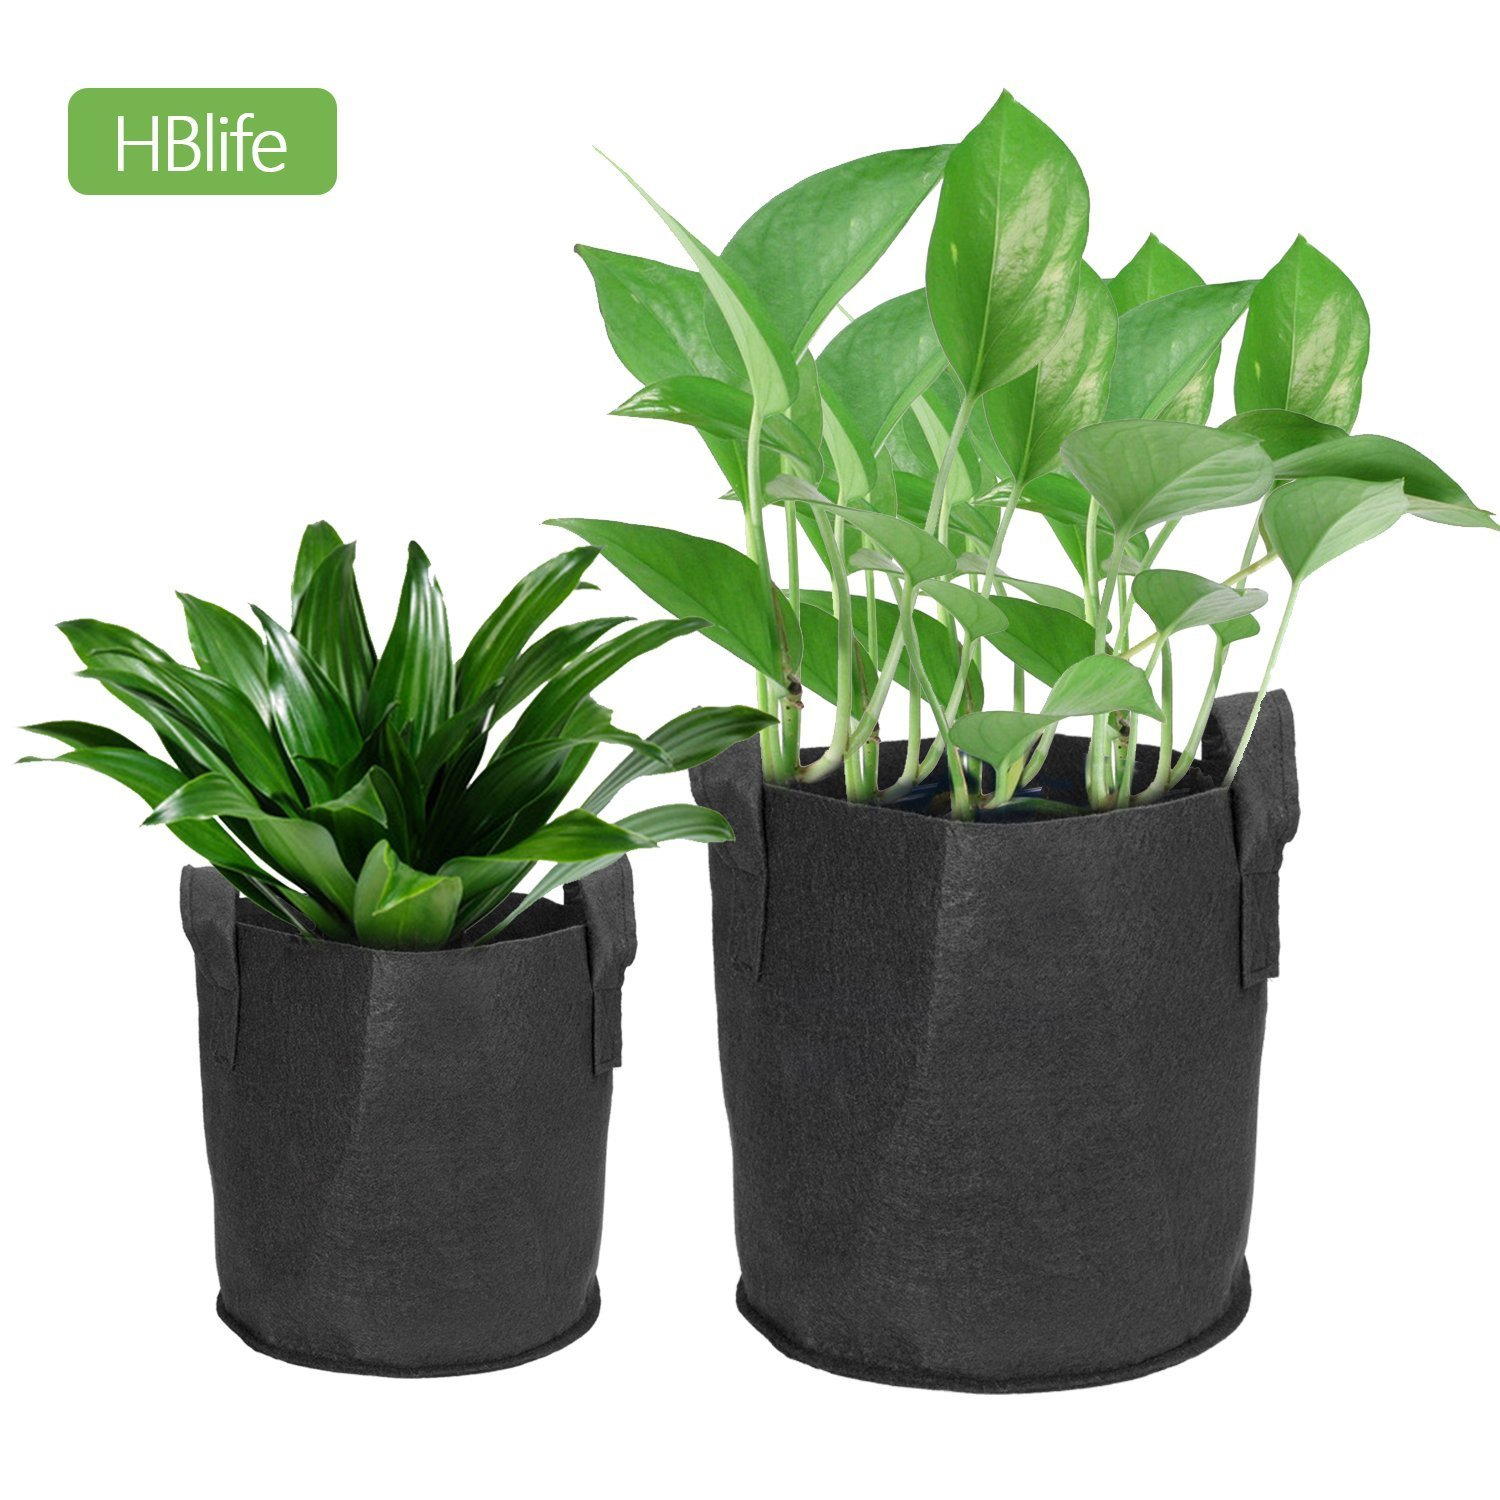 5pcs/set Plant Growing Bag Nonwoven Fabric Breathable Planter Bags with Handle Strap for Tomato Potato Vegetable (3 gallons) HBlife